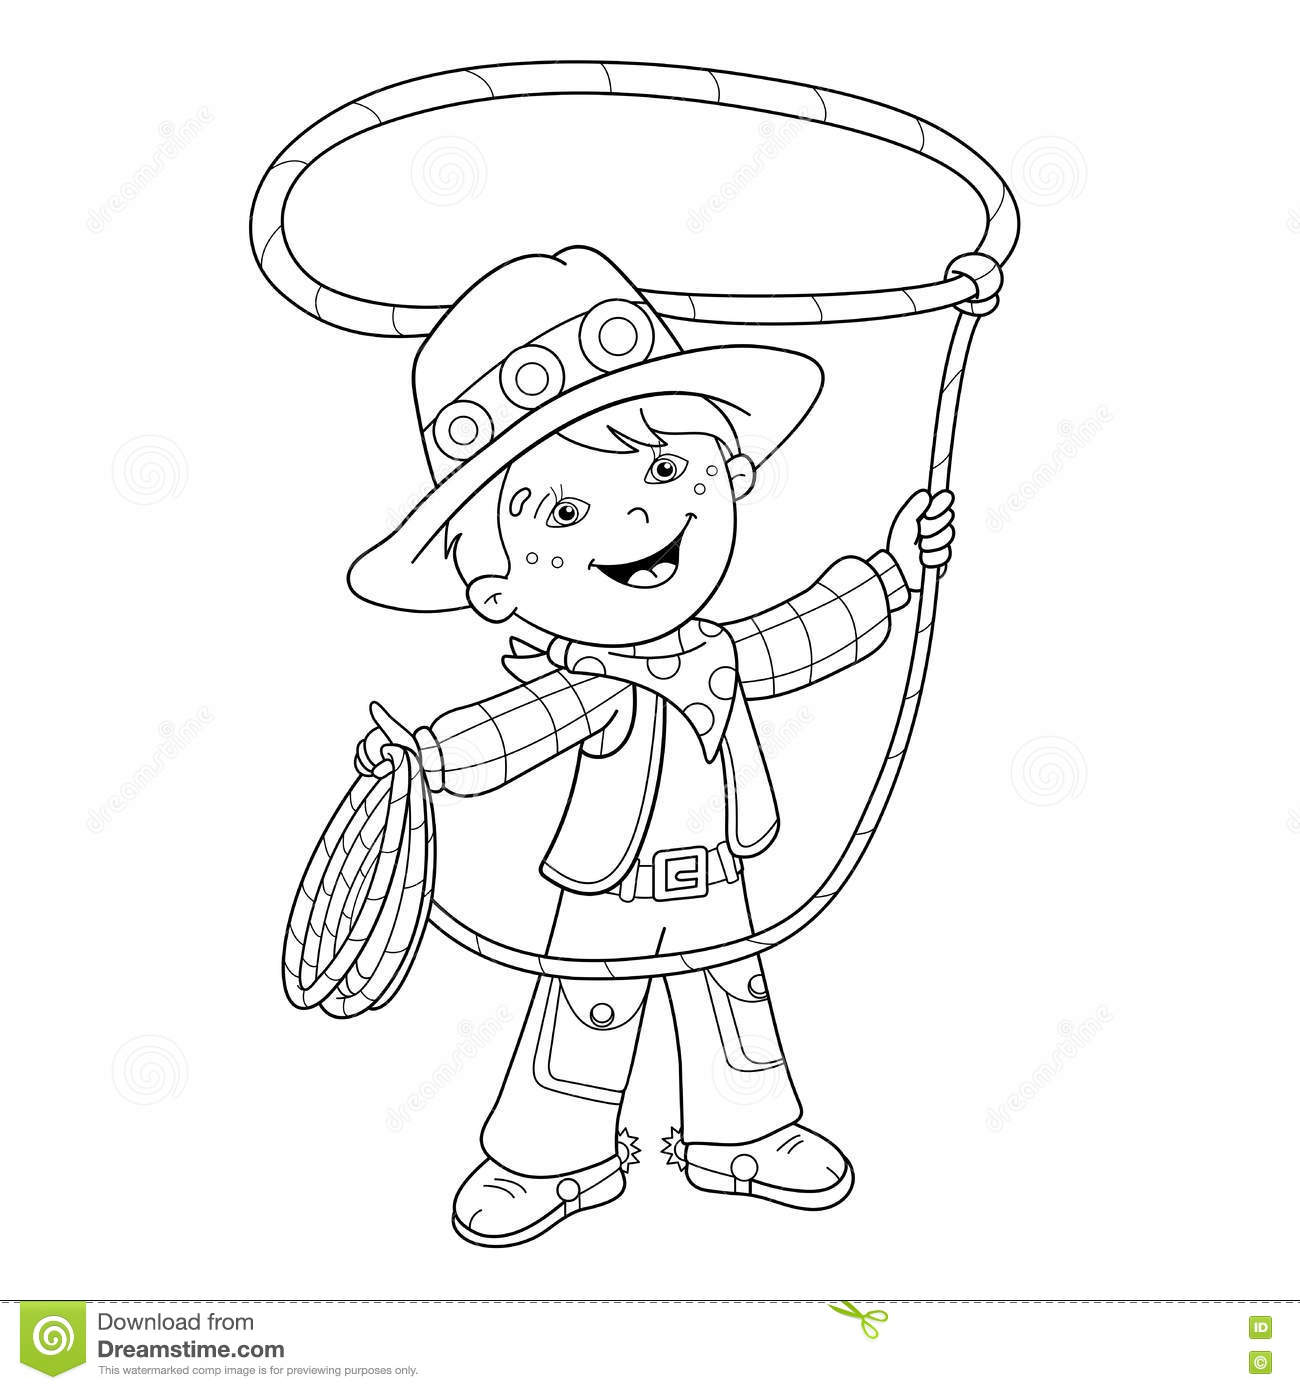 Coloring Page Outline Of Cartoon Cowboy With Lasso Stock